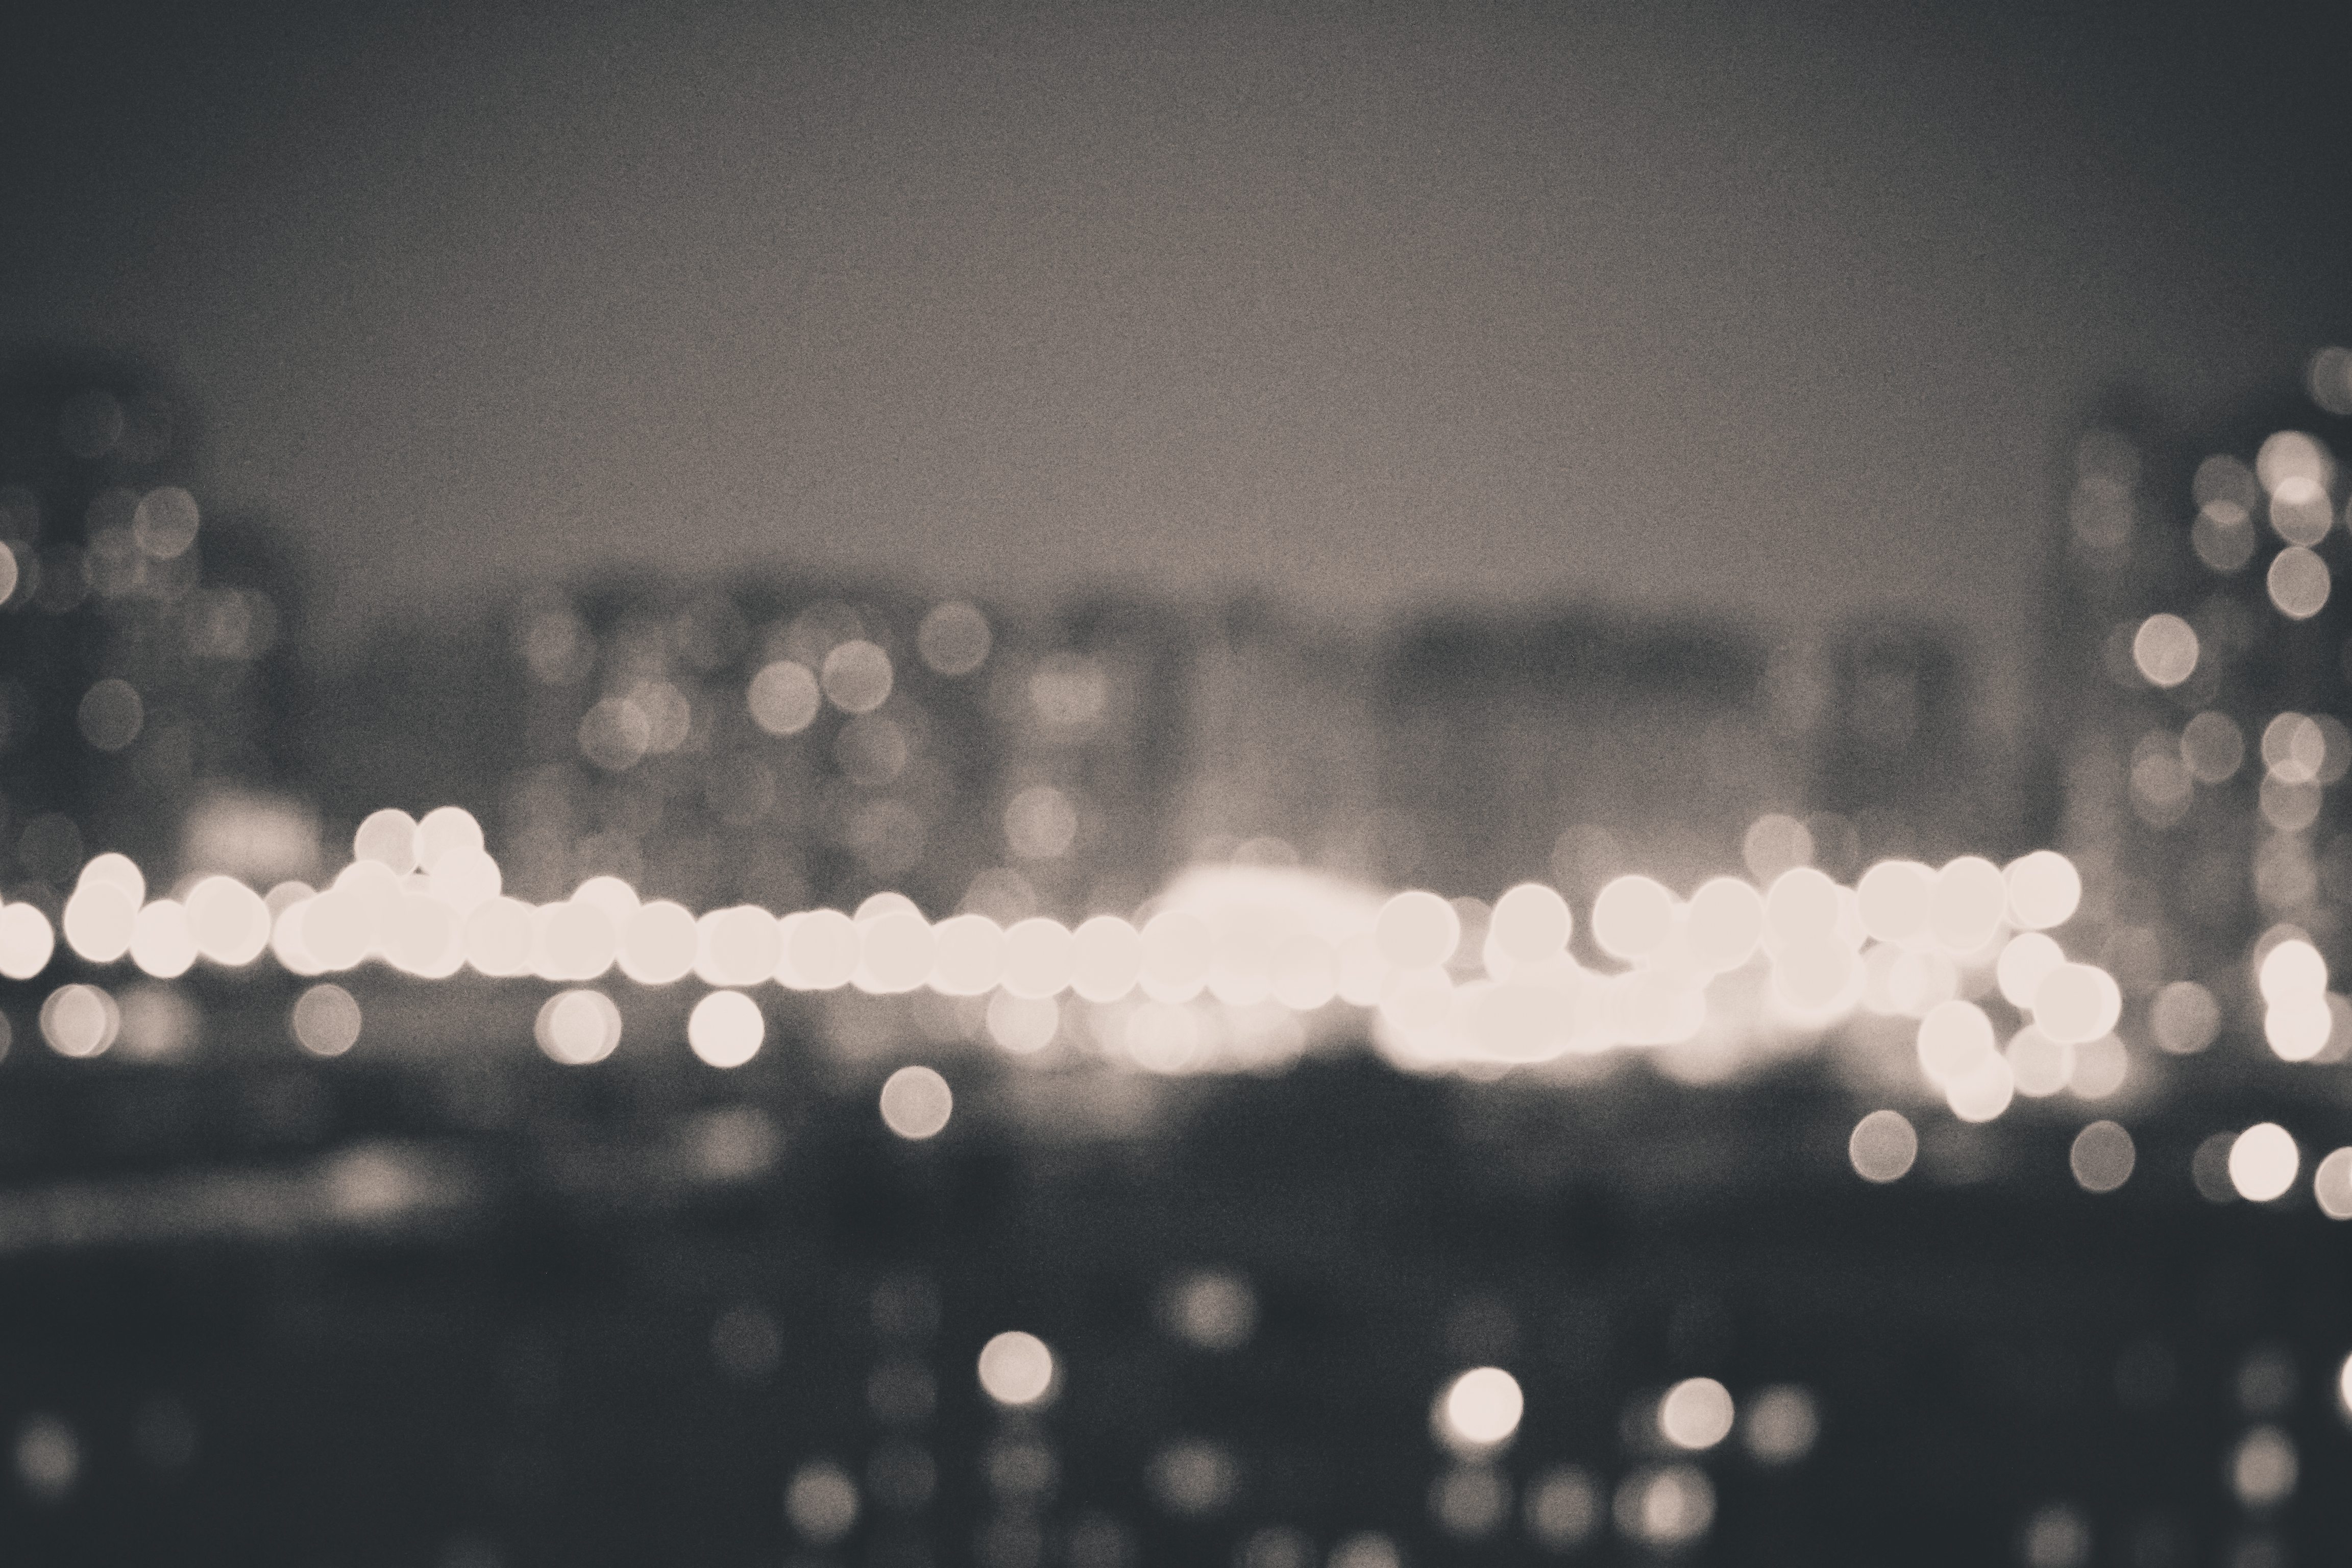 XIII, lights, street, black and white, out of focus lights